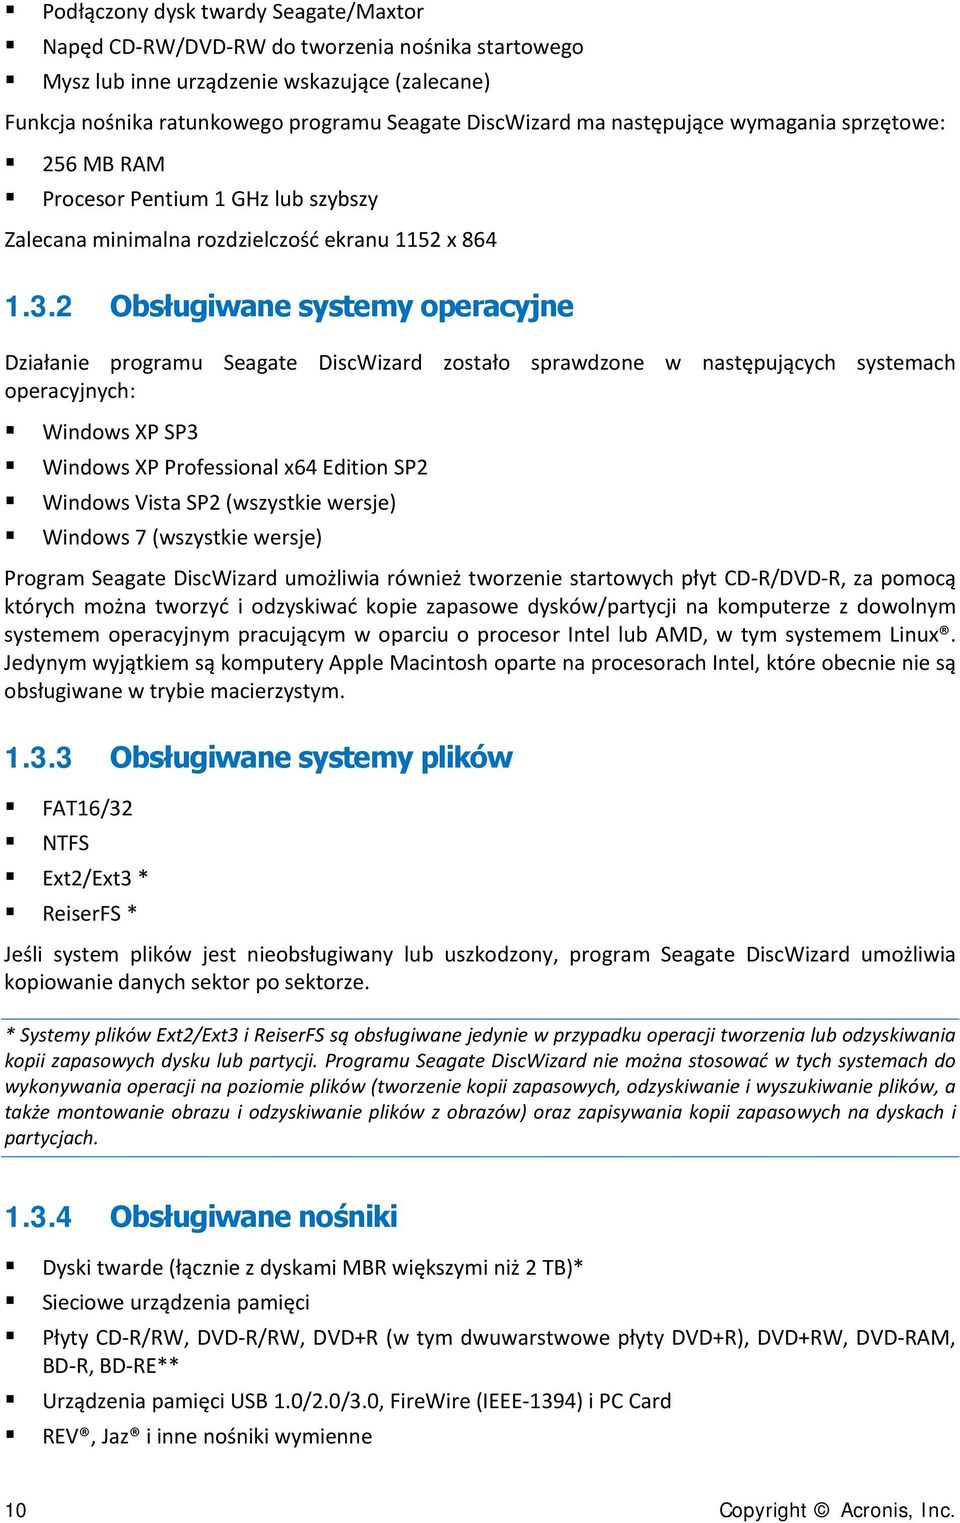 2 Obsługiwane systemy operacyjne Działanie programu Seagate DiscWizard zostało sprawdzone w następujących systemach operacyjnych: Windows XP SP3 Windows XP Professional x64 Edition SP2 Windows Vista